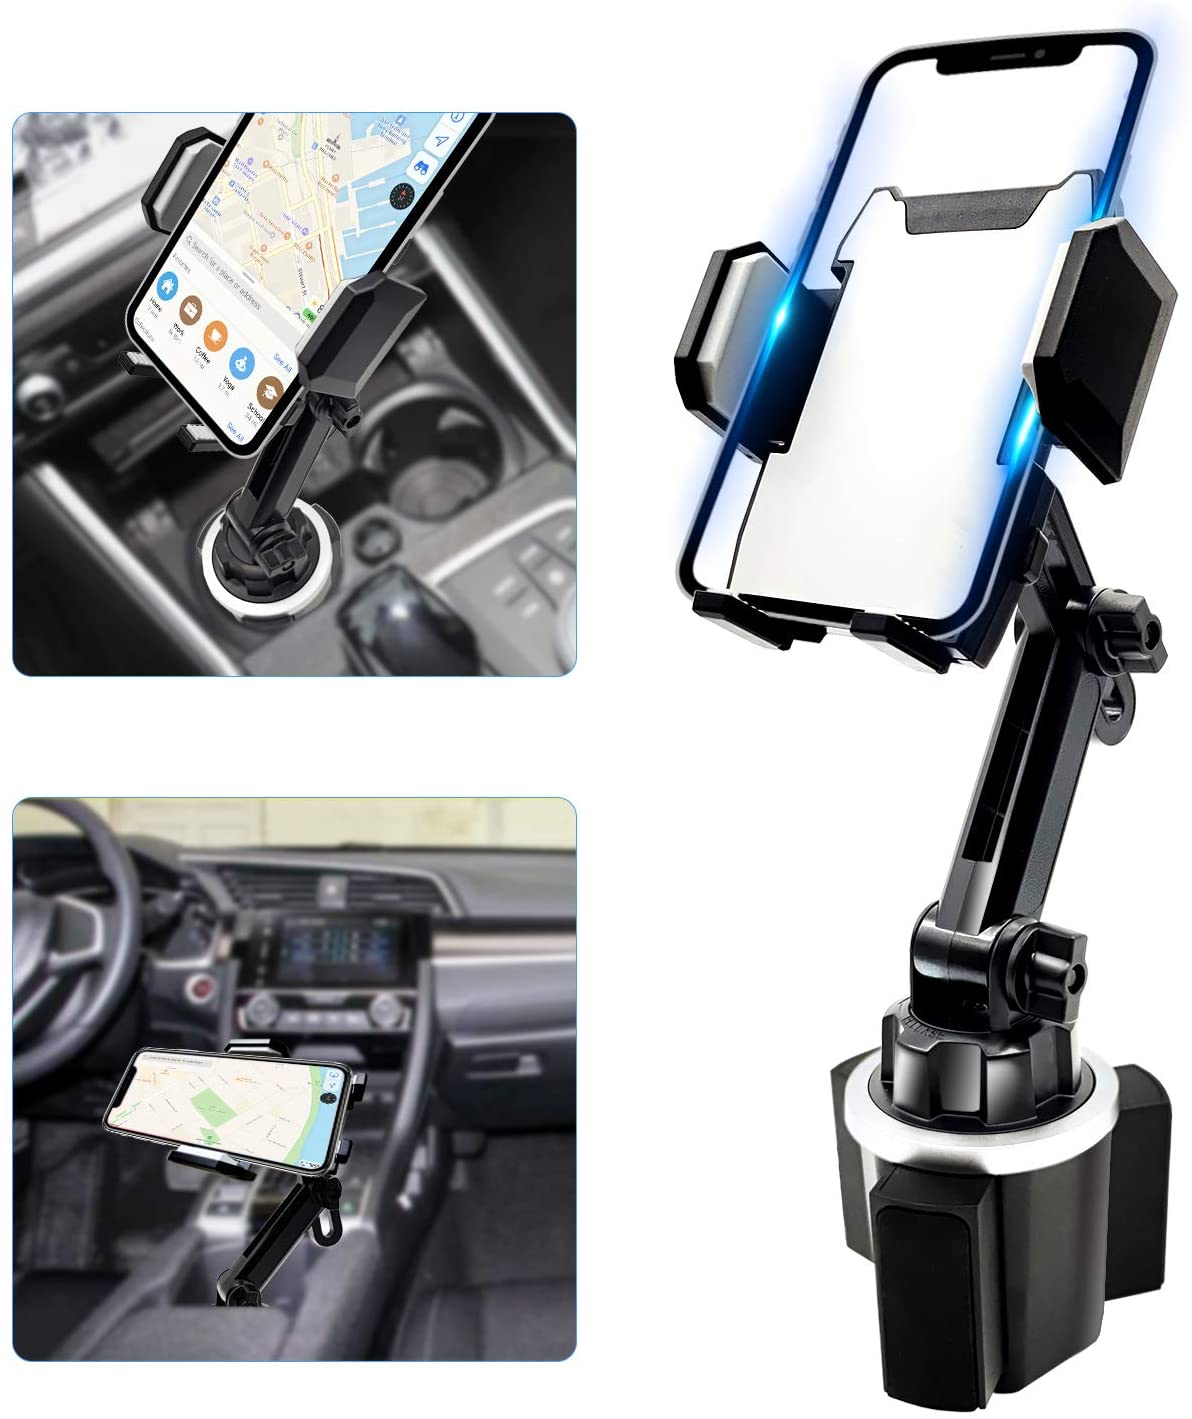 Cup Phone Holder for Car, Universal Adjustable Gooseneck Car Cup Holder Phone Mount Car Cradle for Cell Phone iPhone 11 Pro/X/Xs/XR/Xs Max/8/8Plus/7/6s/SE,Galaxy S10/S9/S8/S7/Note 8 9